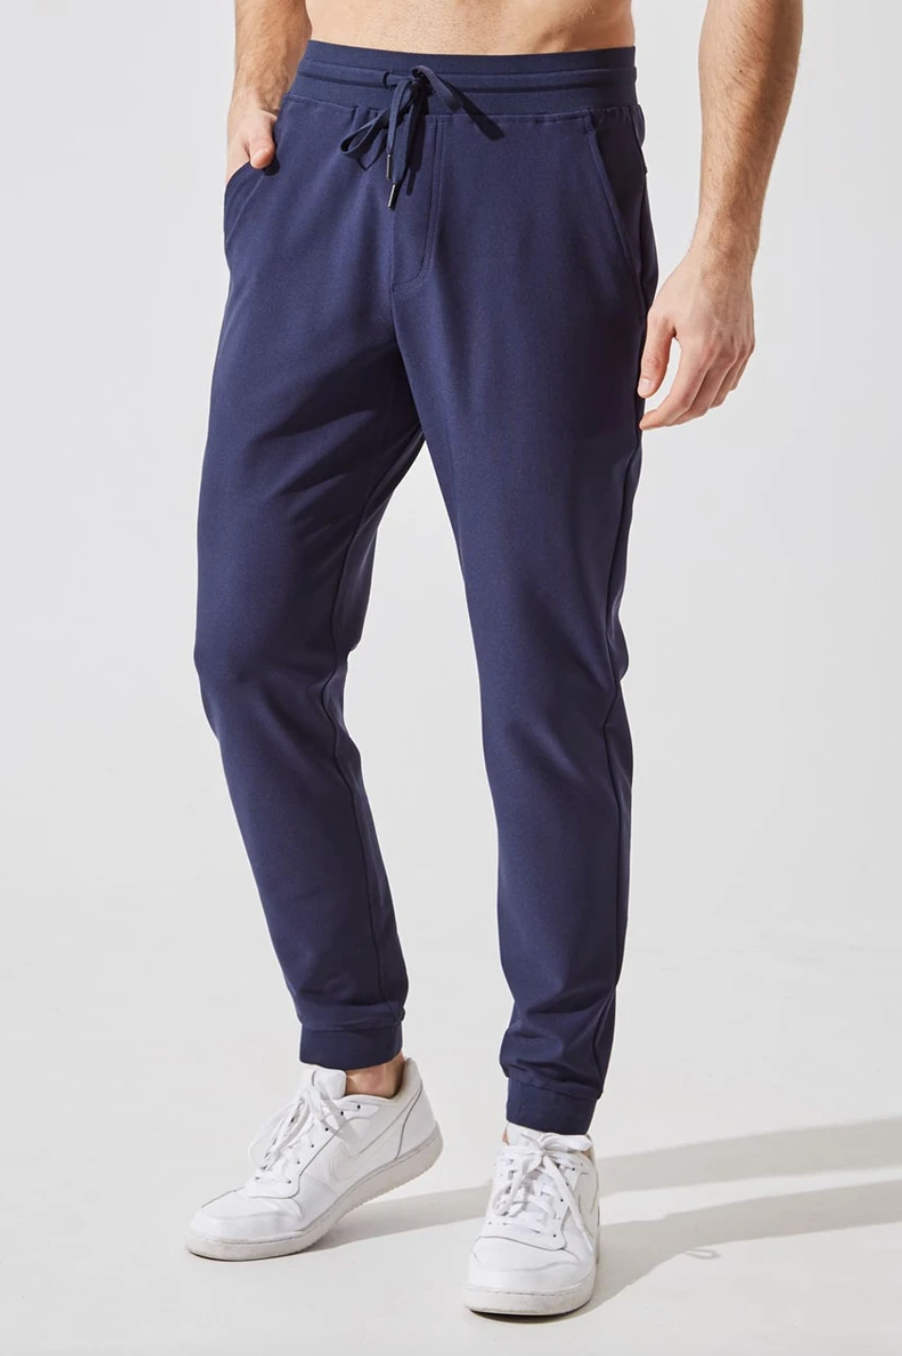 Gusto Recycled Polyester Everyday Jogger in Deep Navy (Photo via MPG)